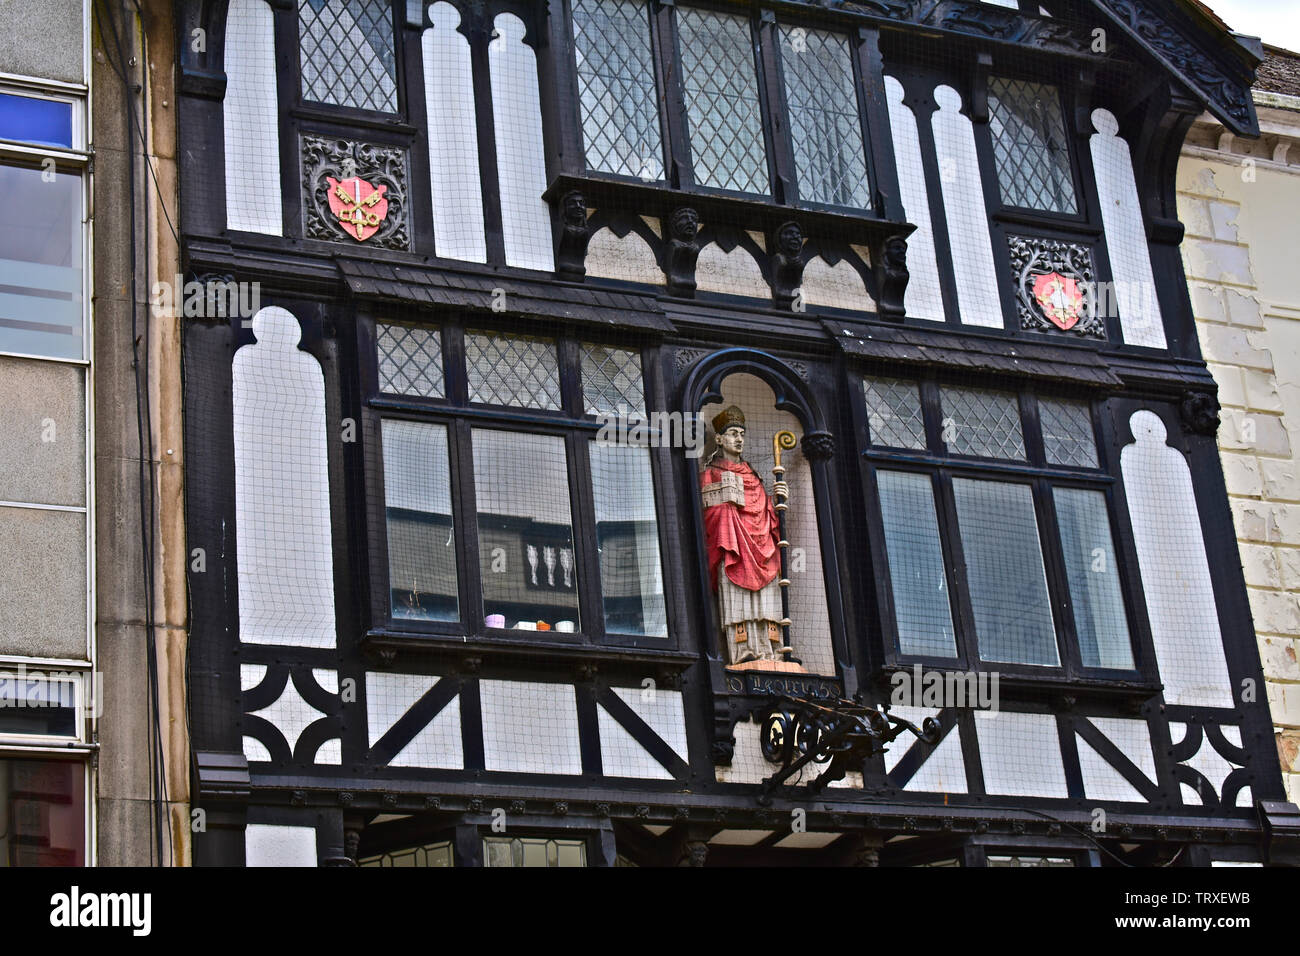 High Street, Exeter City Centre. Old half-timbered building occupied by Santander bank. Close-up detail of ornate carved figure at 2nd floor level. - Stock Image